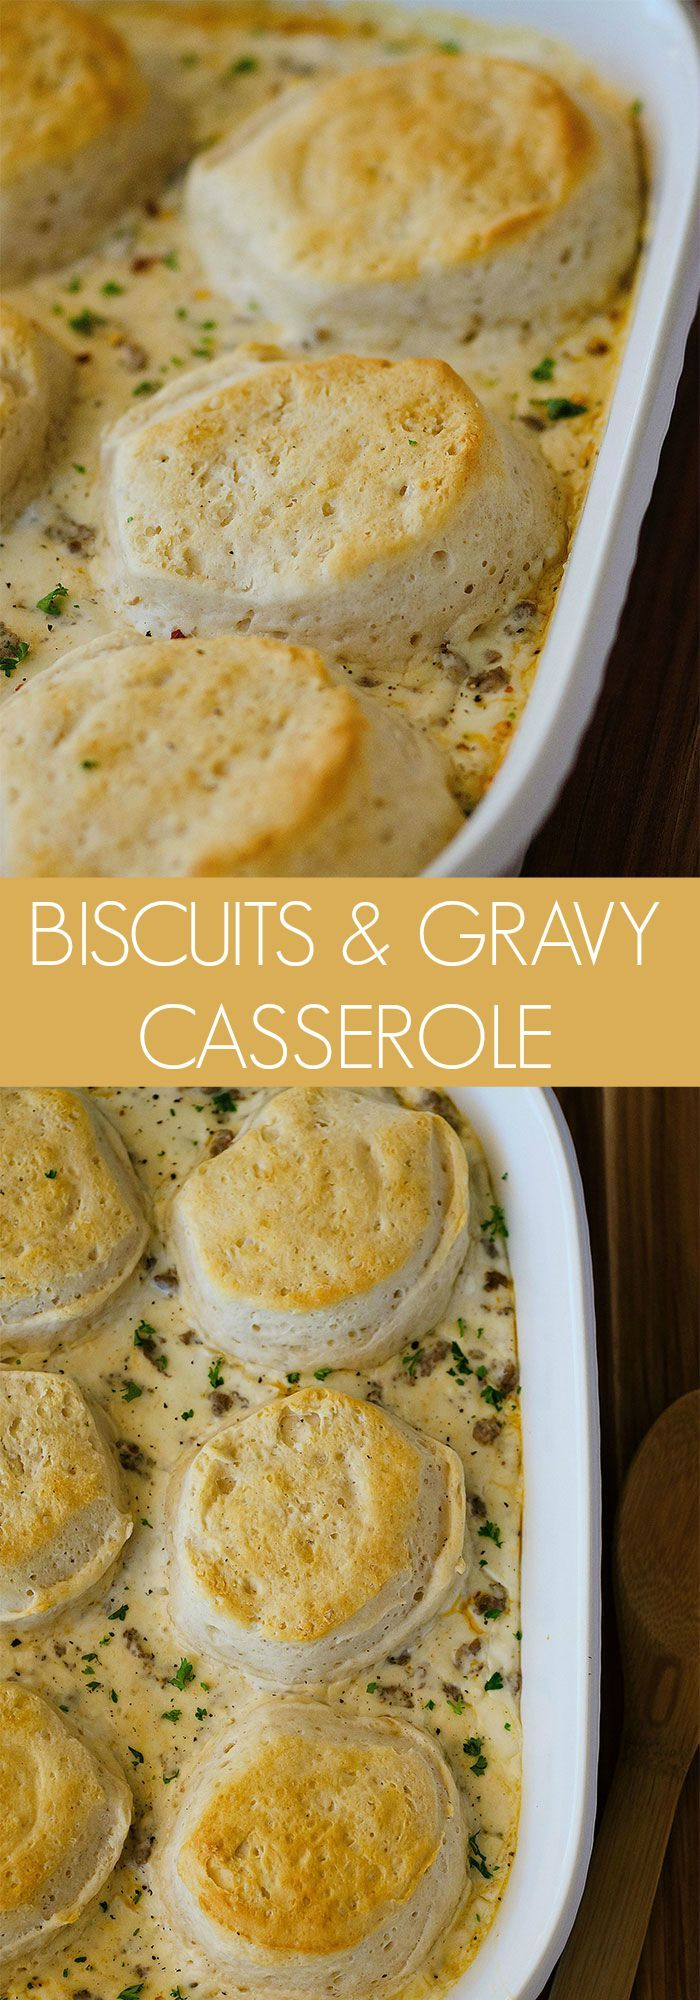 Biscuits and Gravy Casserole _ Flaky biscuits puff up and get golden over the sausage & gravy. It is amazing! There is a secret ingredient in this gravy that makes it extra creamy & so yummy. This casserole would be perfect to serve for a brunch party or for guests on the weekend!